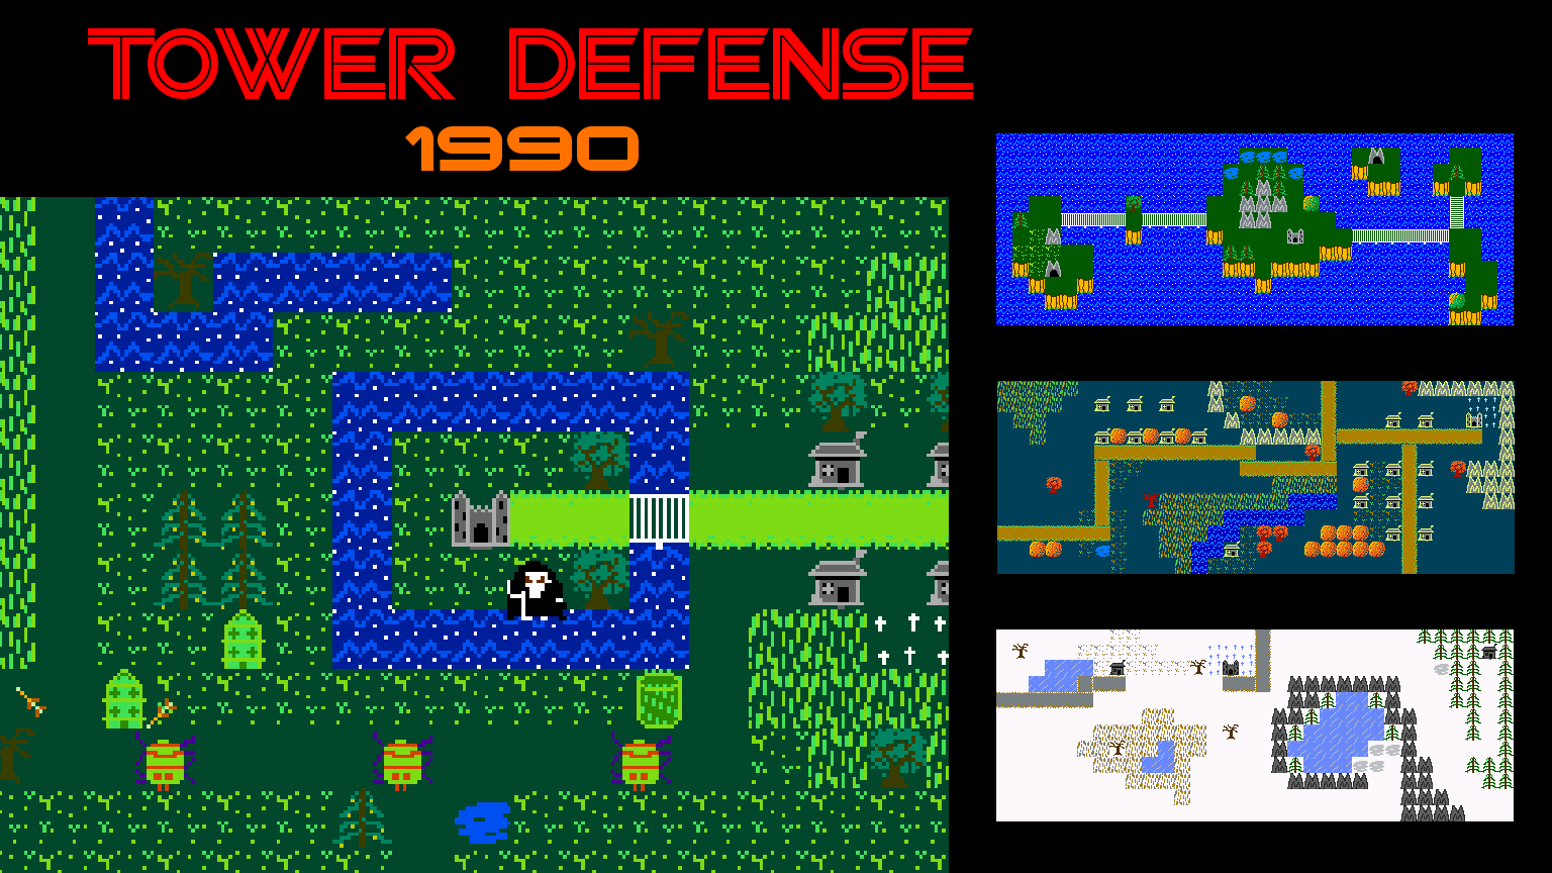 Tower Defense 1990 - A New NES Game by Ryan Lloyd — Kickstarter